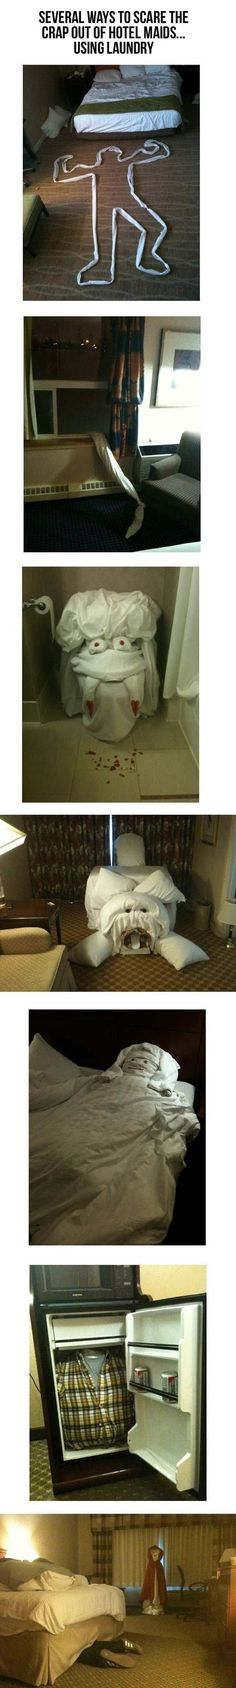 Before leaving your hotel room…